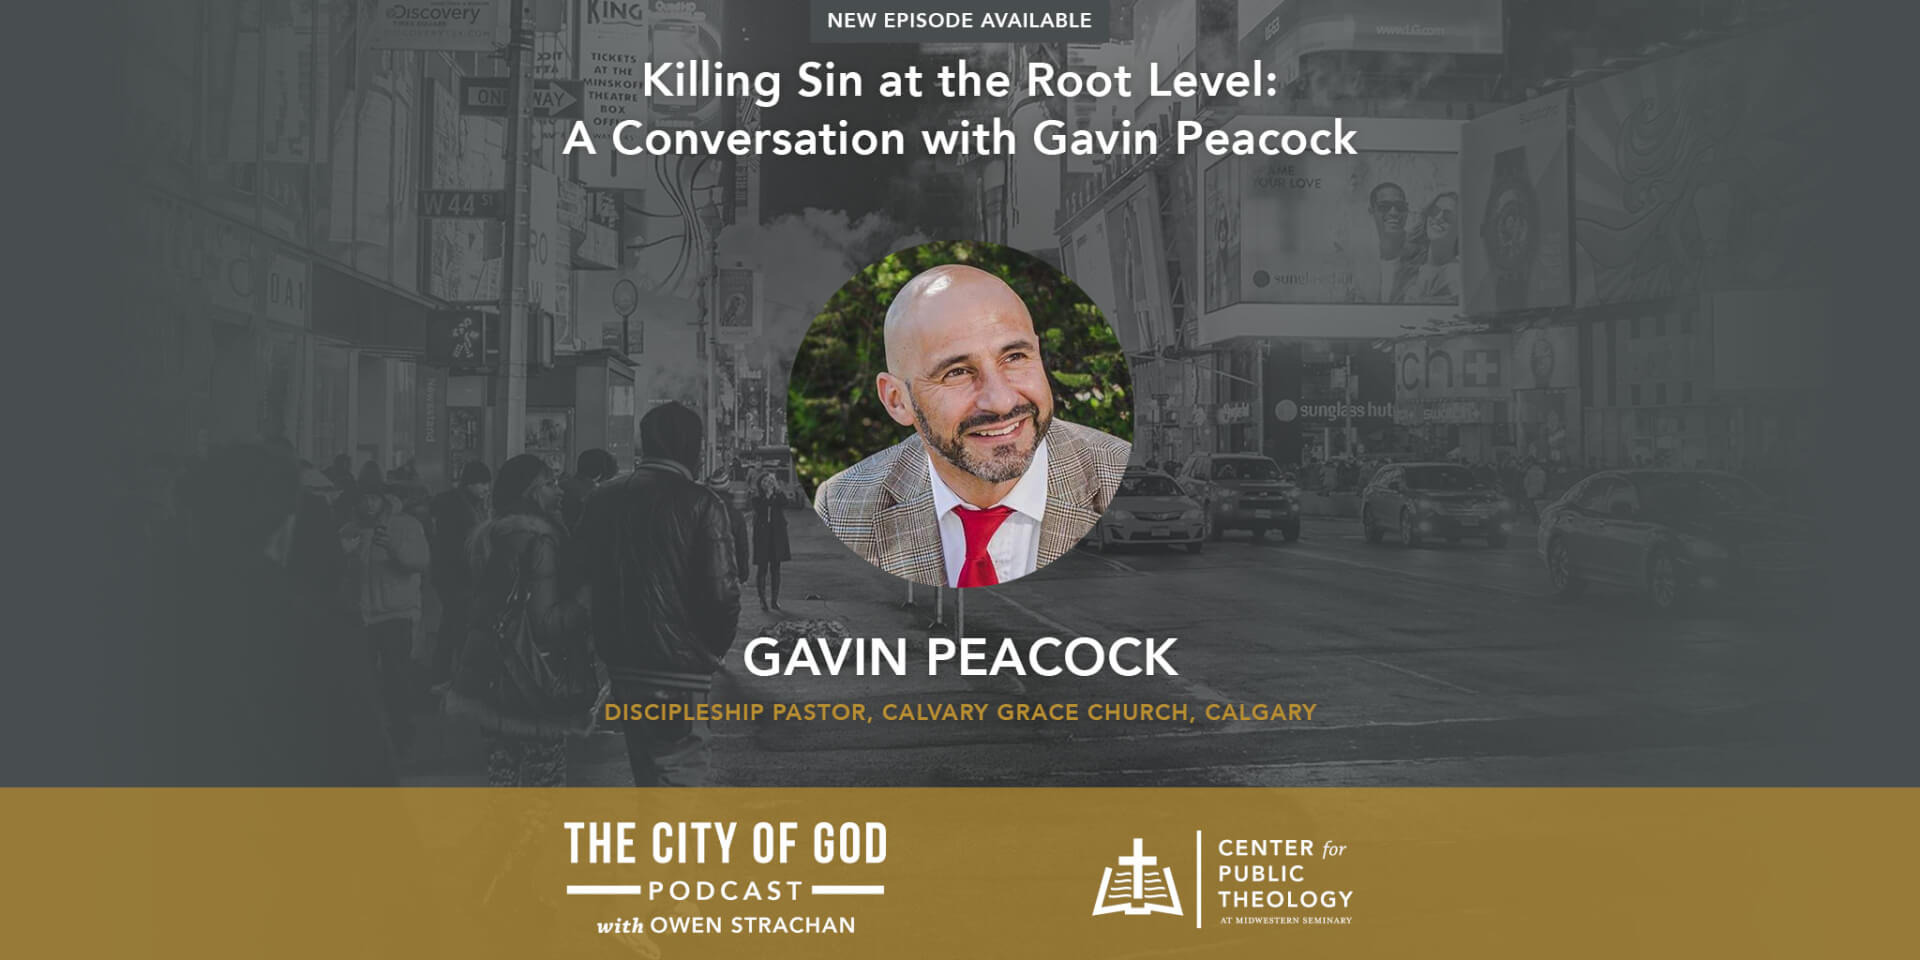 Killing Sin at the Root Level: A Conversation with Gavin Peacock